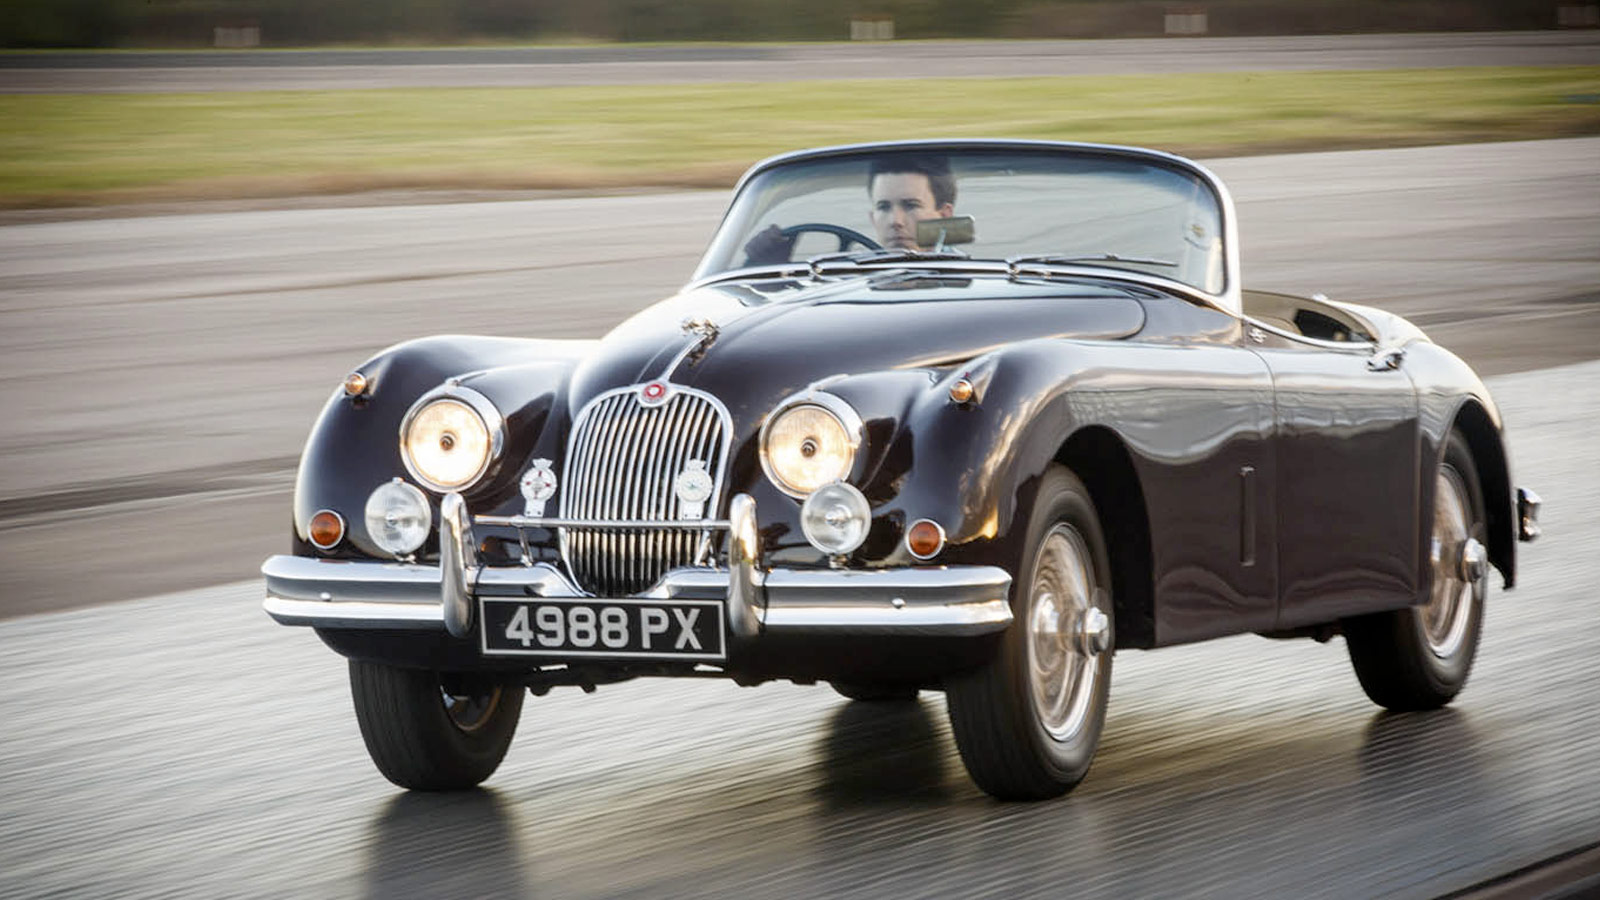 driving heritage jaguar on road.